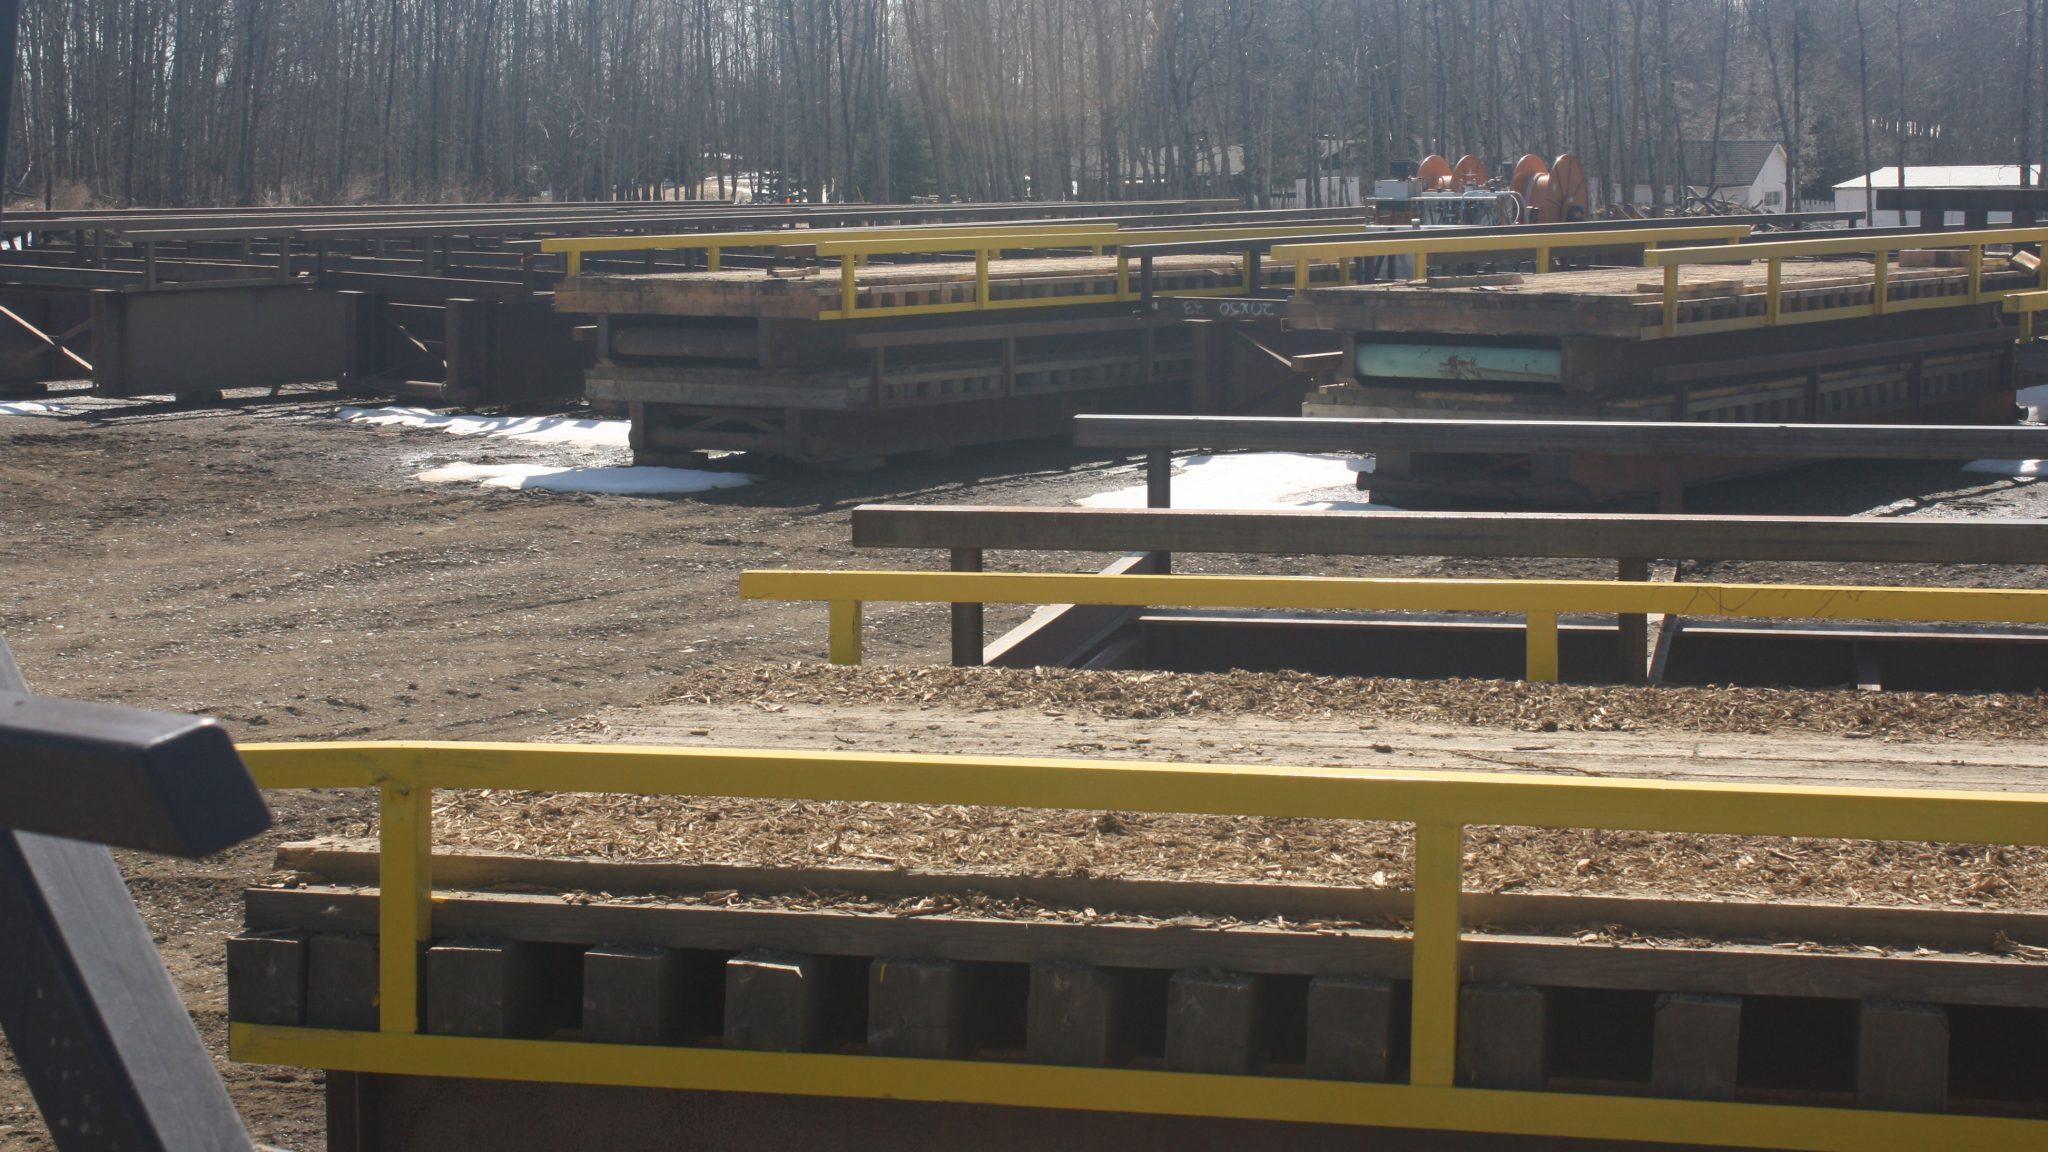 Portable Bridge Construction : Portable temporary low profile bridge construction by gnb